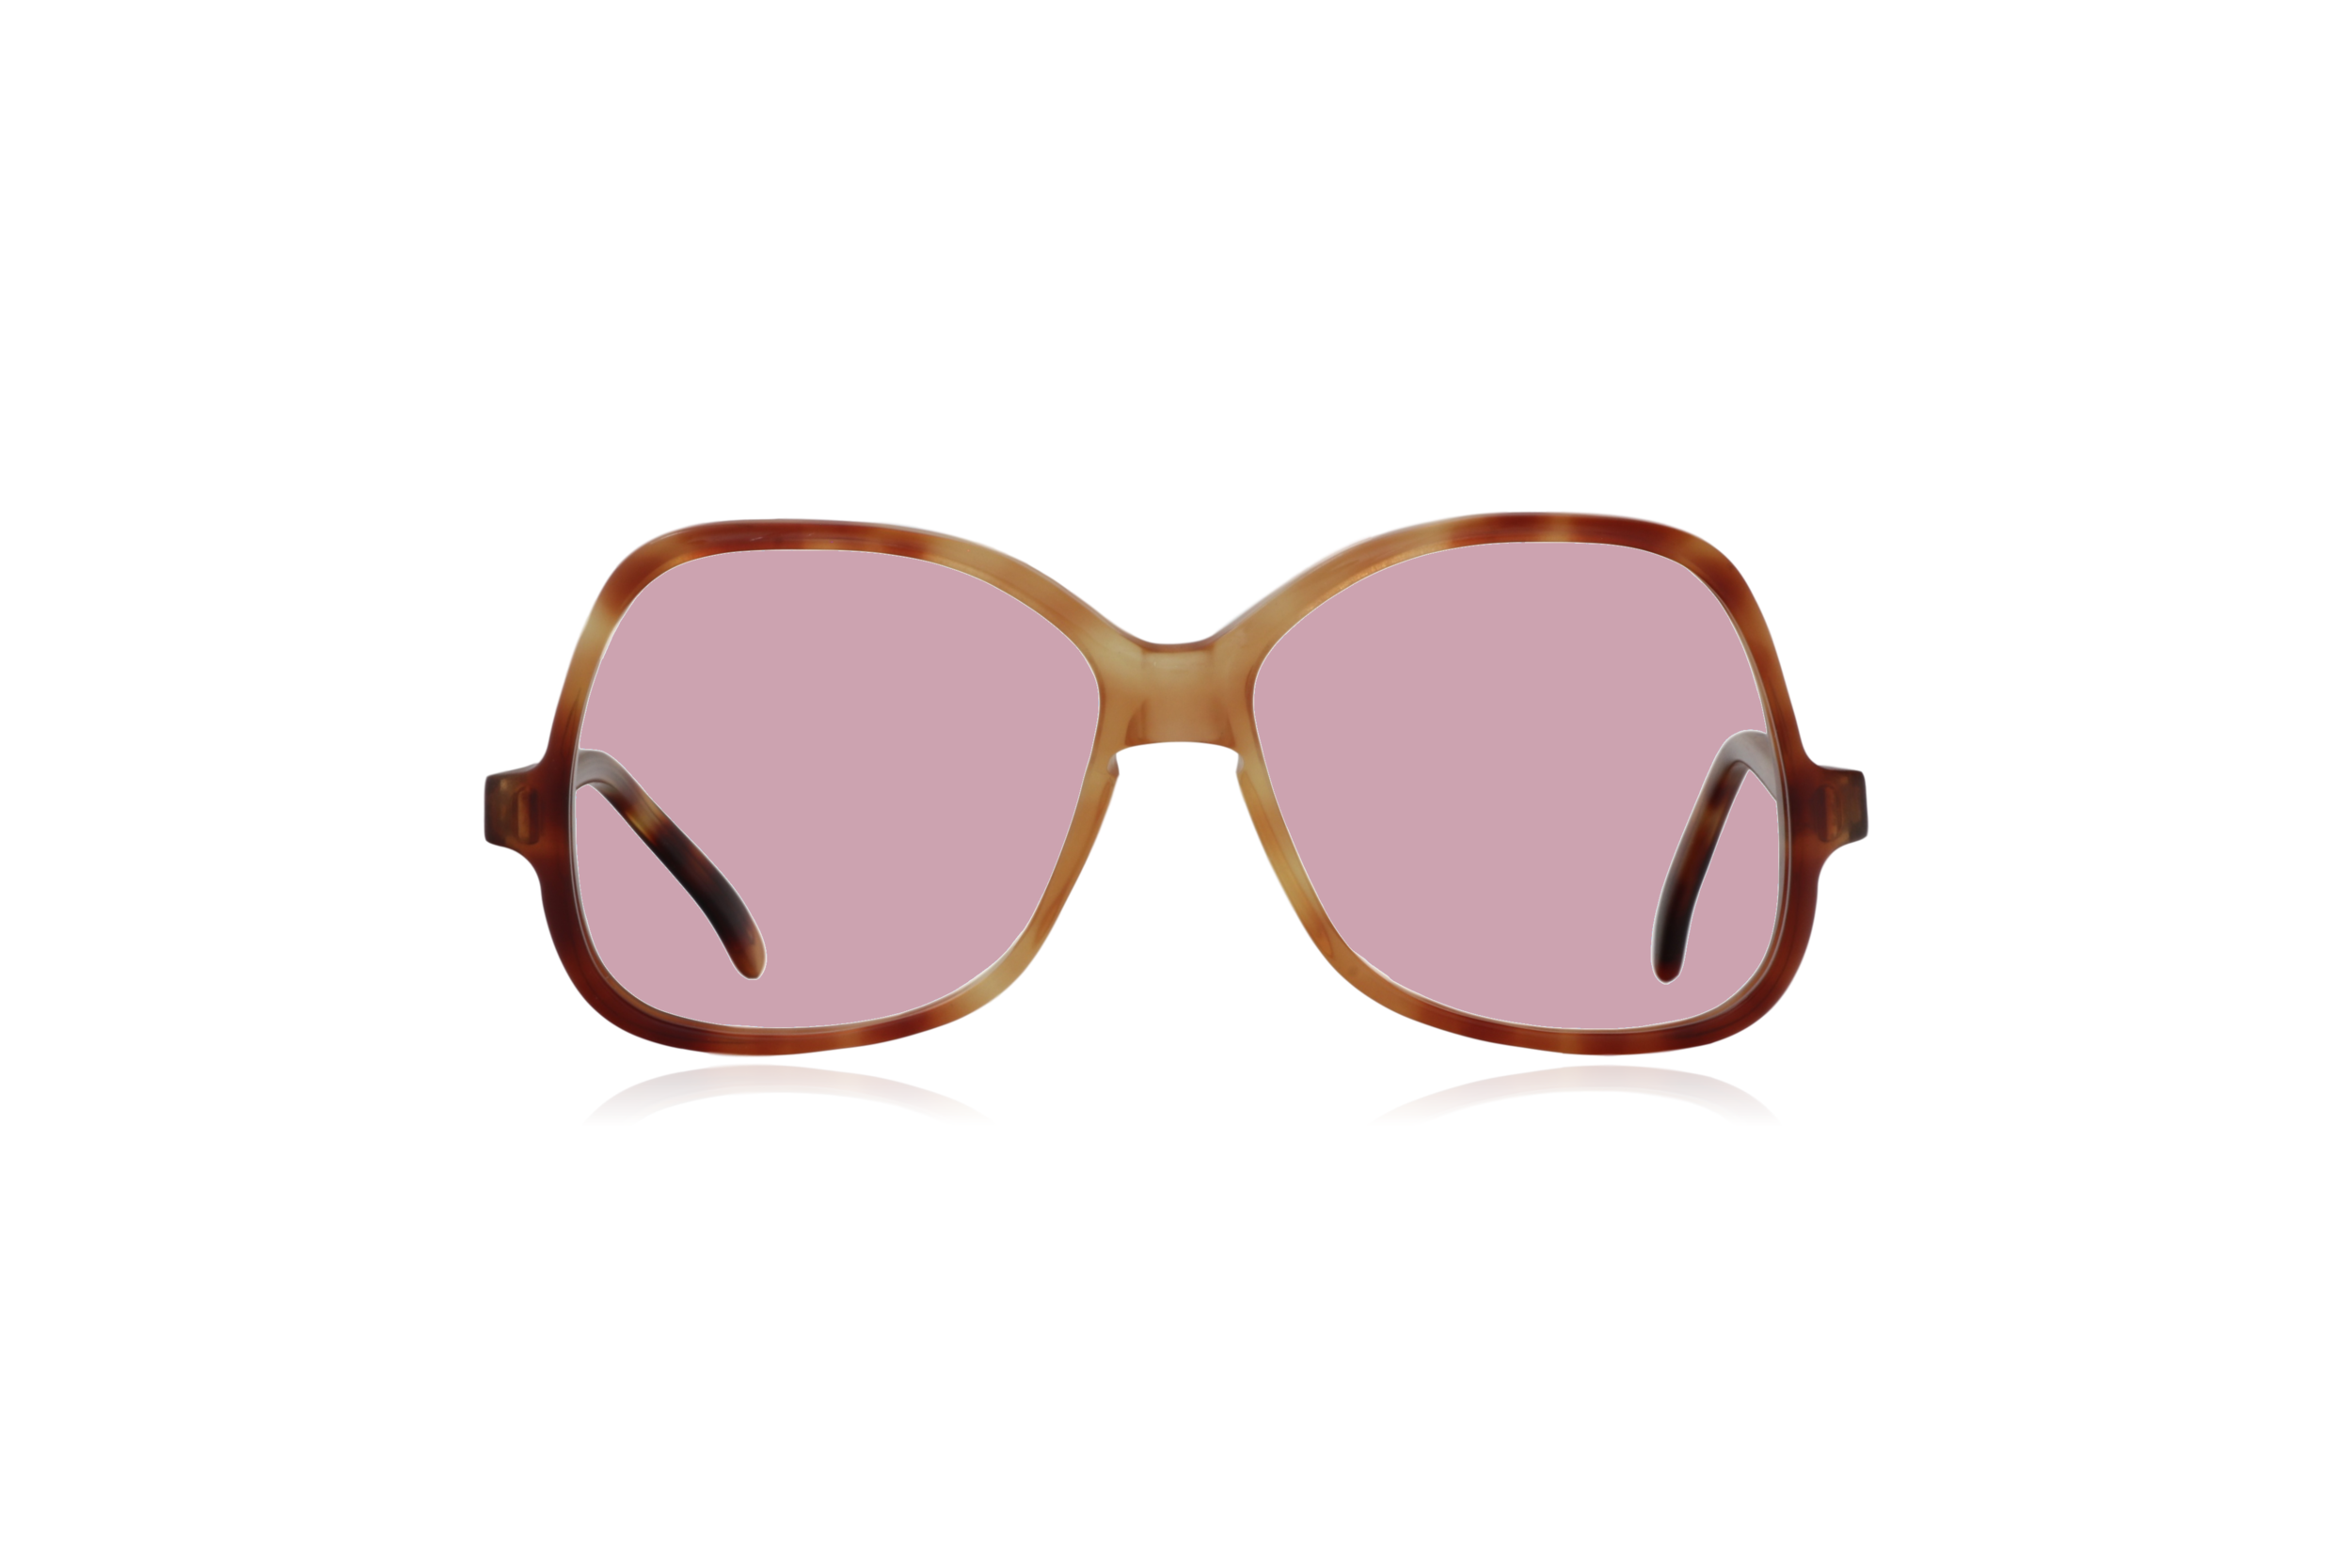 Peep Eyewear, Vintage Glasses, Honey by Bausch & Lomb, Oversize, Front, Pink.png